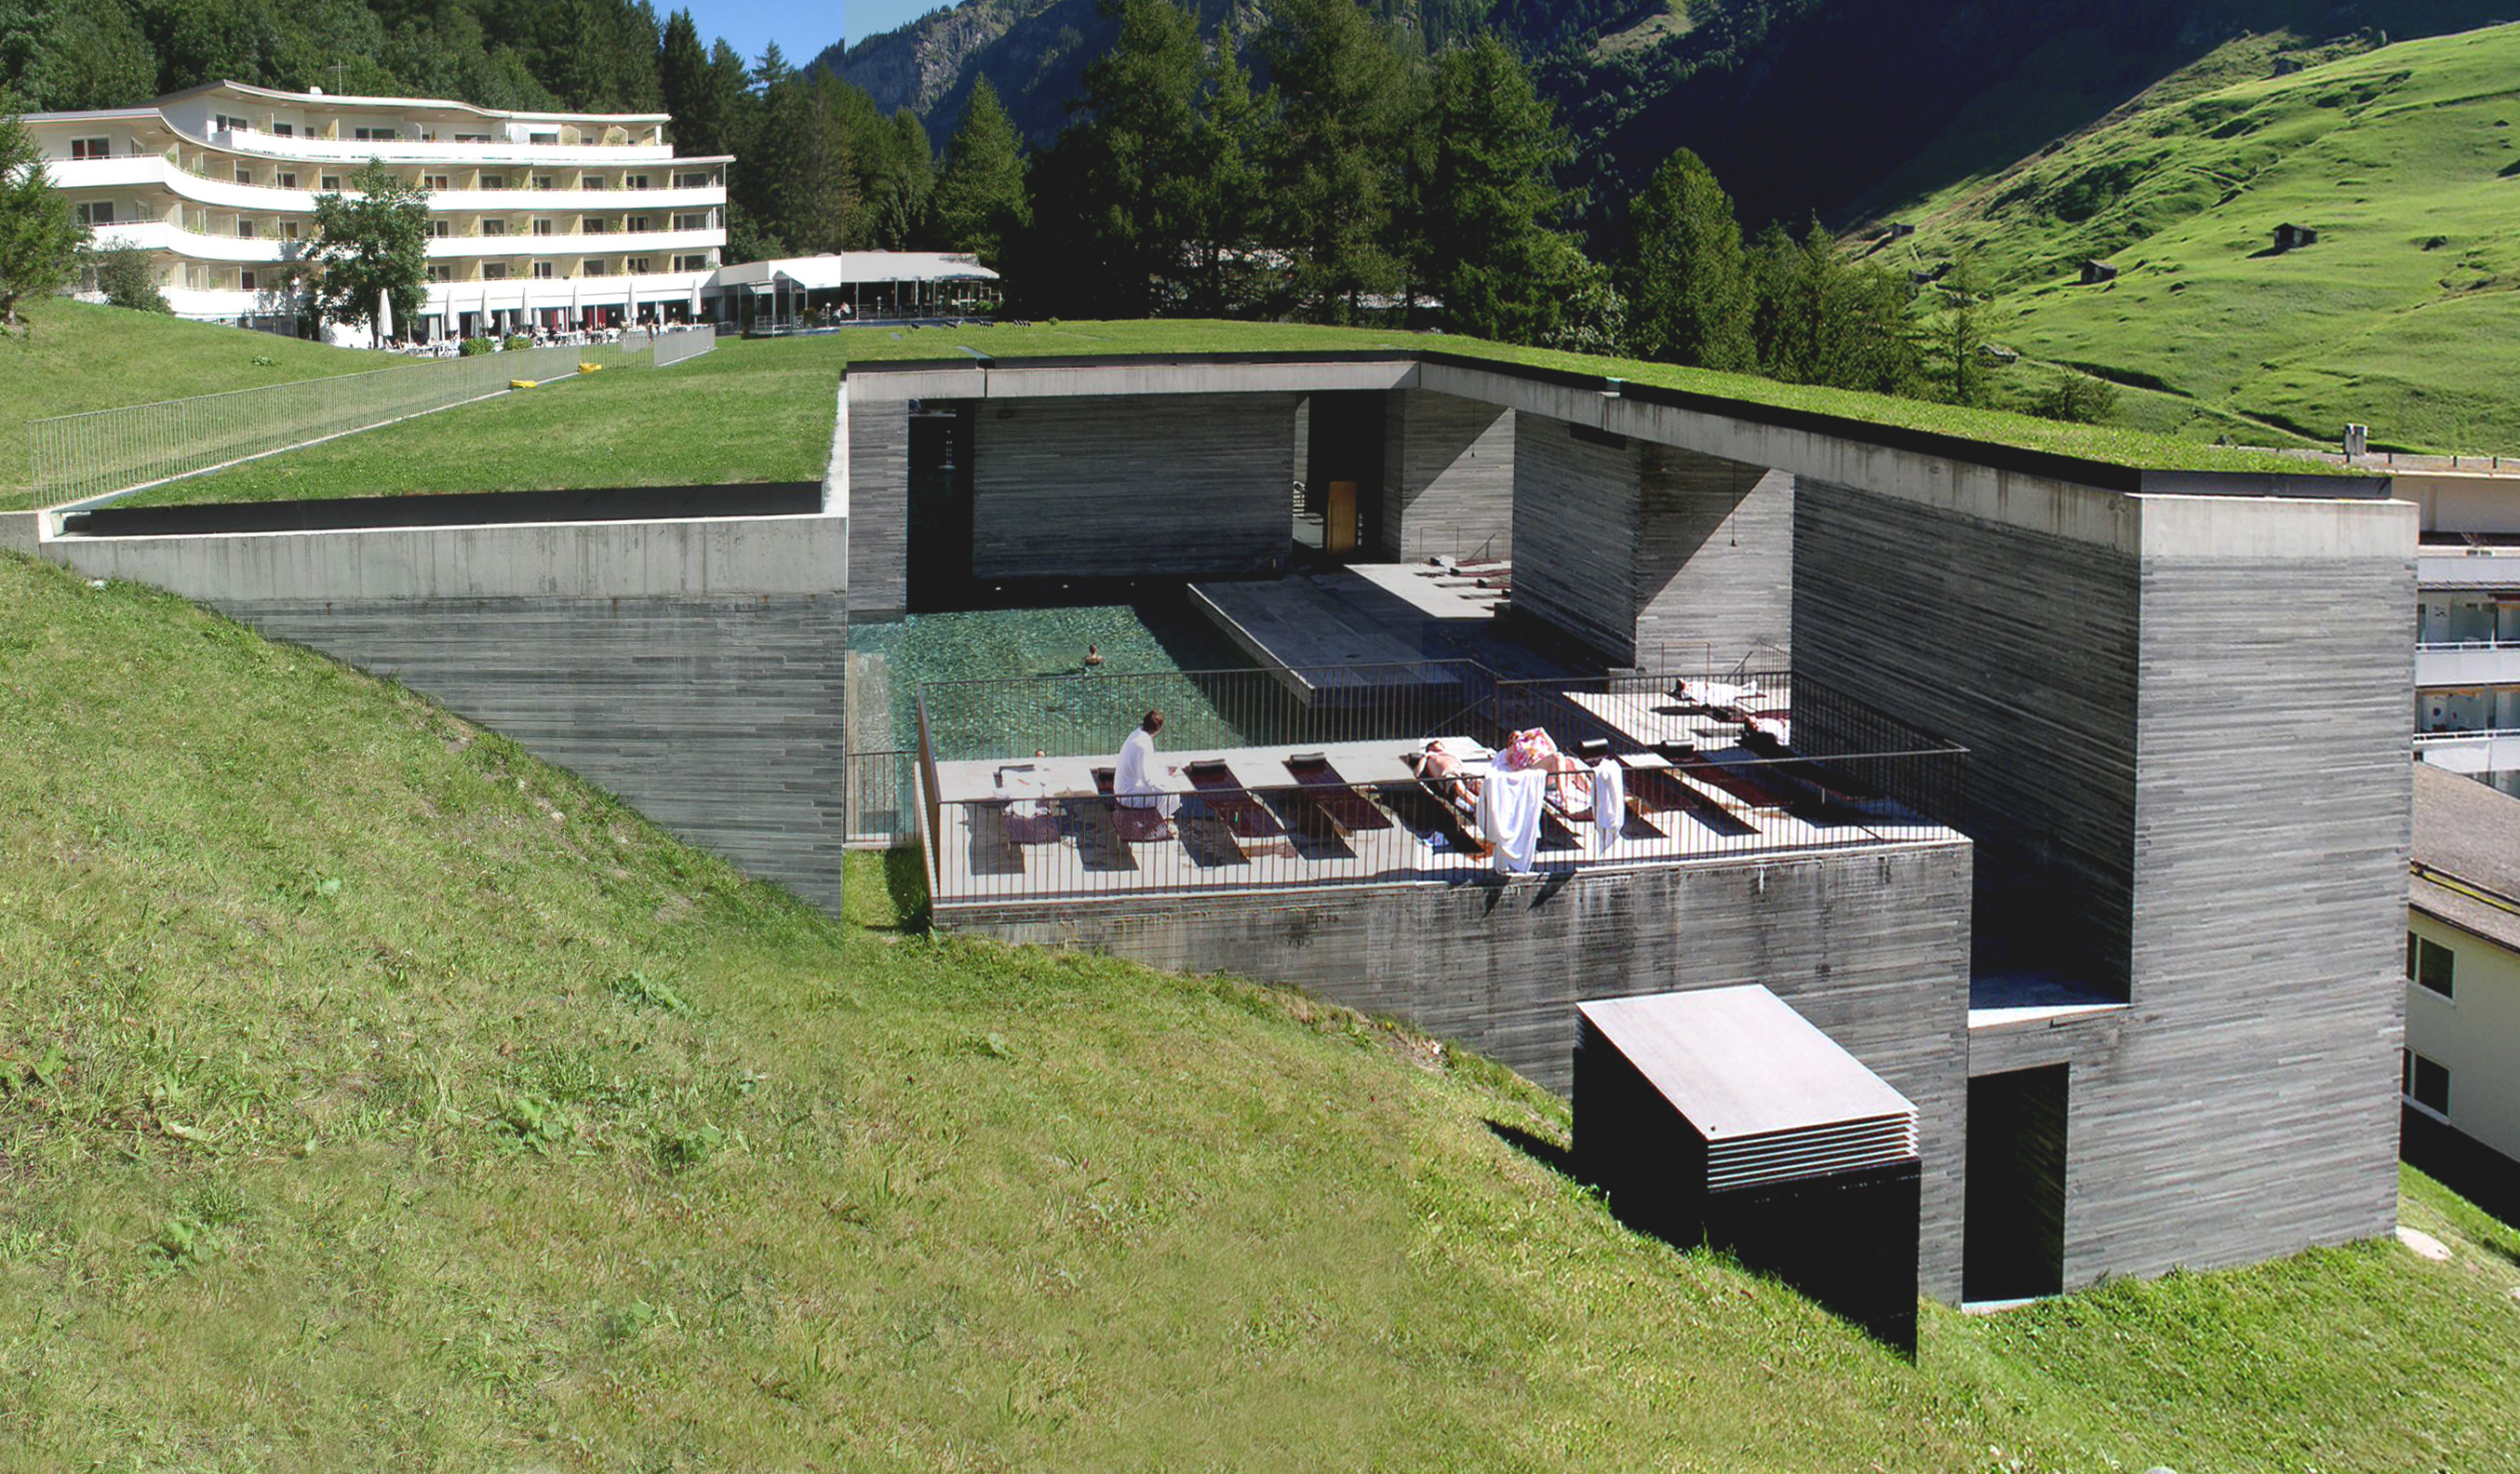 Hotel therme vals peter zumthor arkhitekton for Design hotel vals